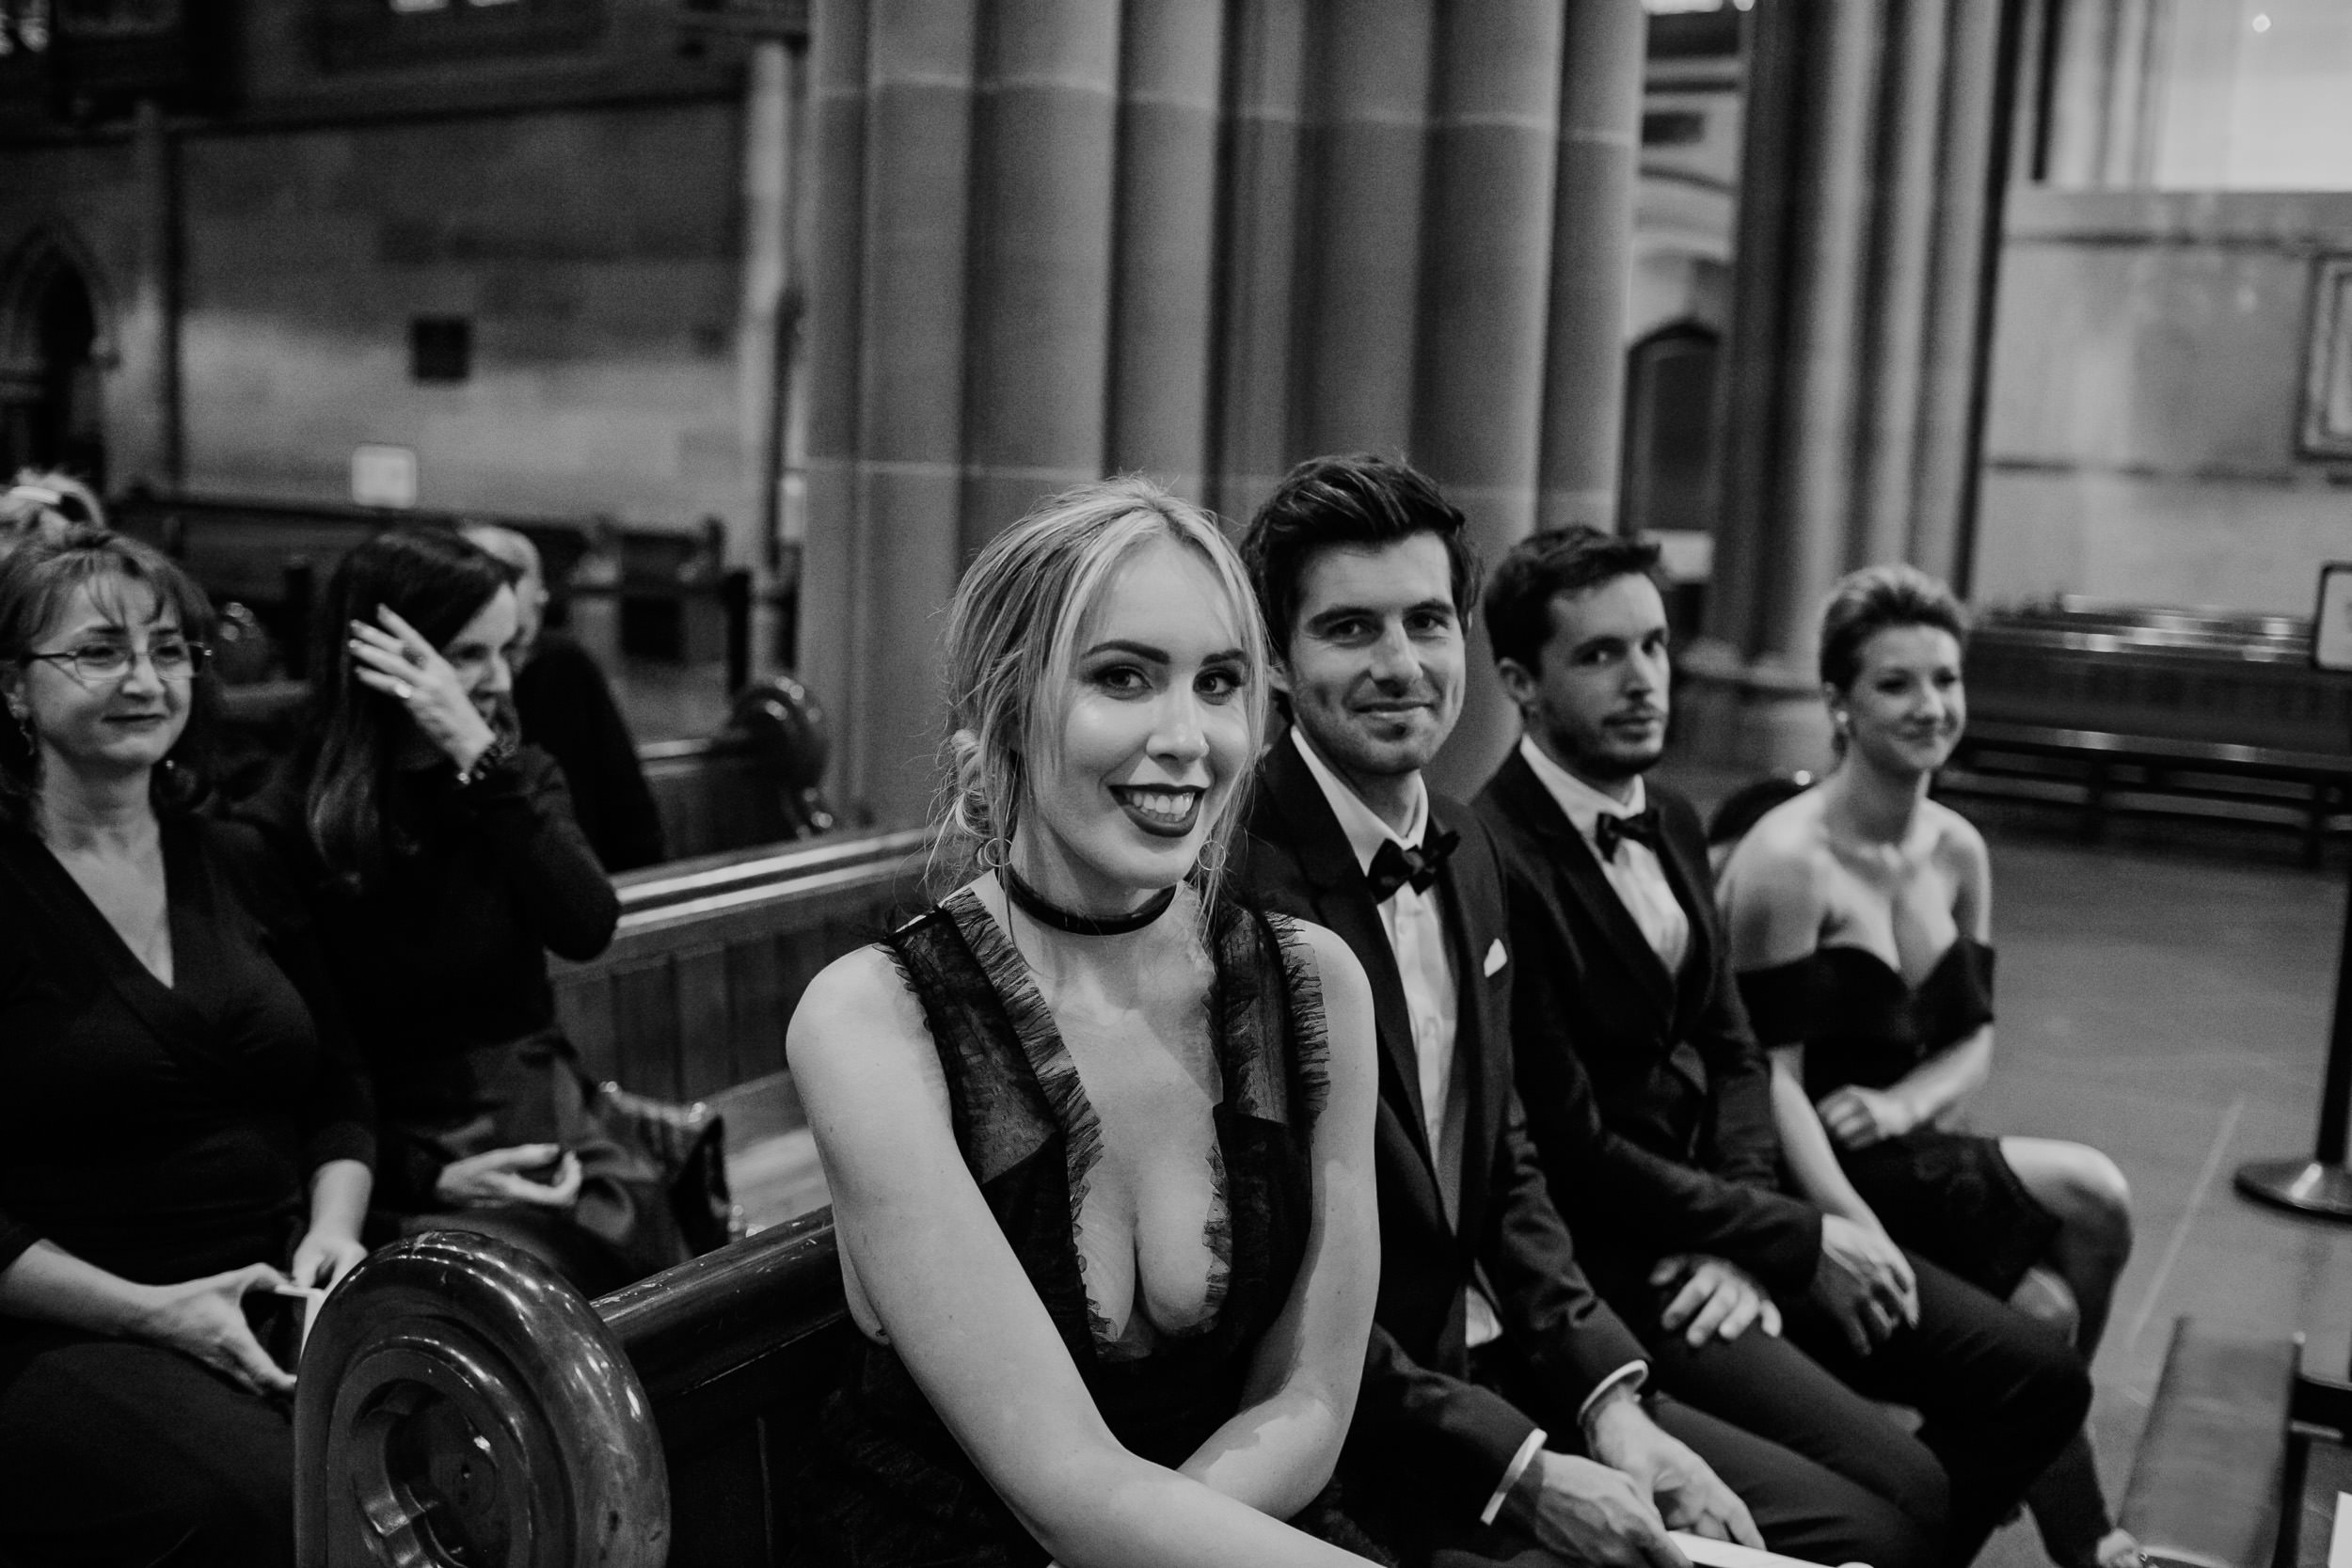 justinaaronphotographer_the_old_clare_kensignton_street_social_st_andrews_cathedral_sydney_alana_chris_b-001-076.jpg